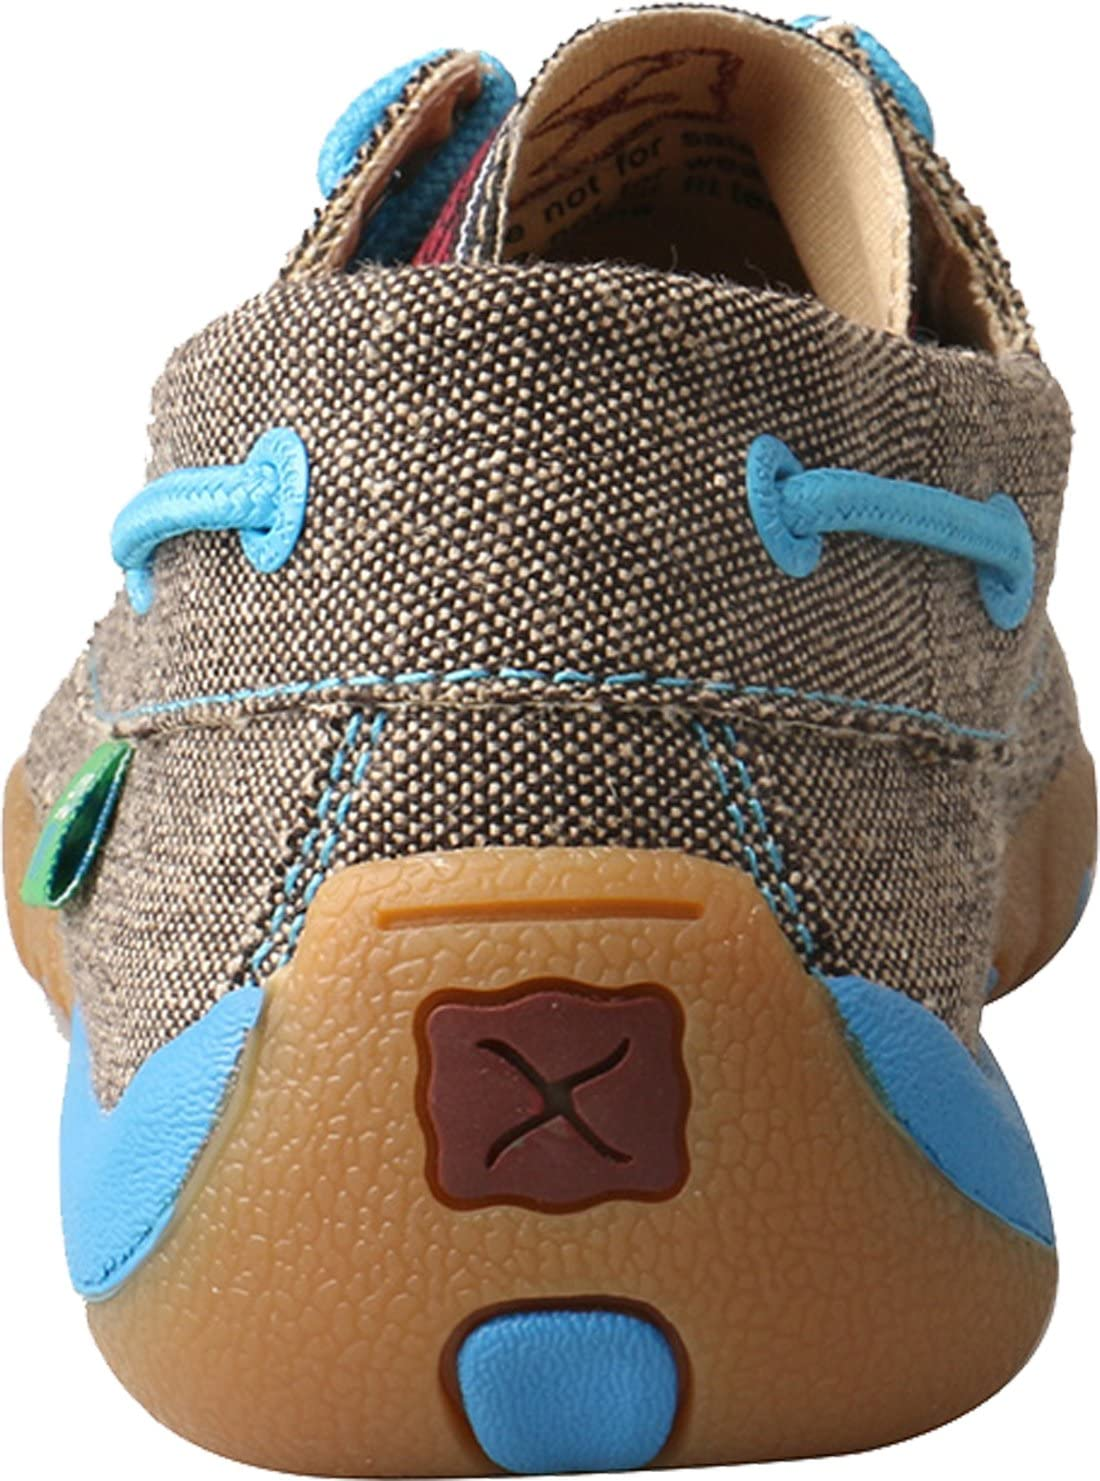 Twisted X Womens Boat Shoe Canvas Driving Moccasins